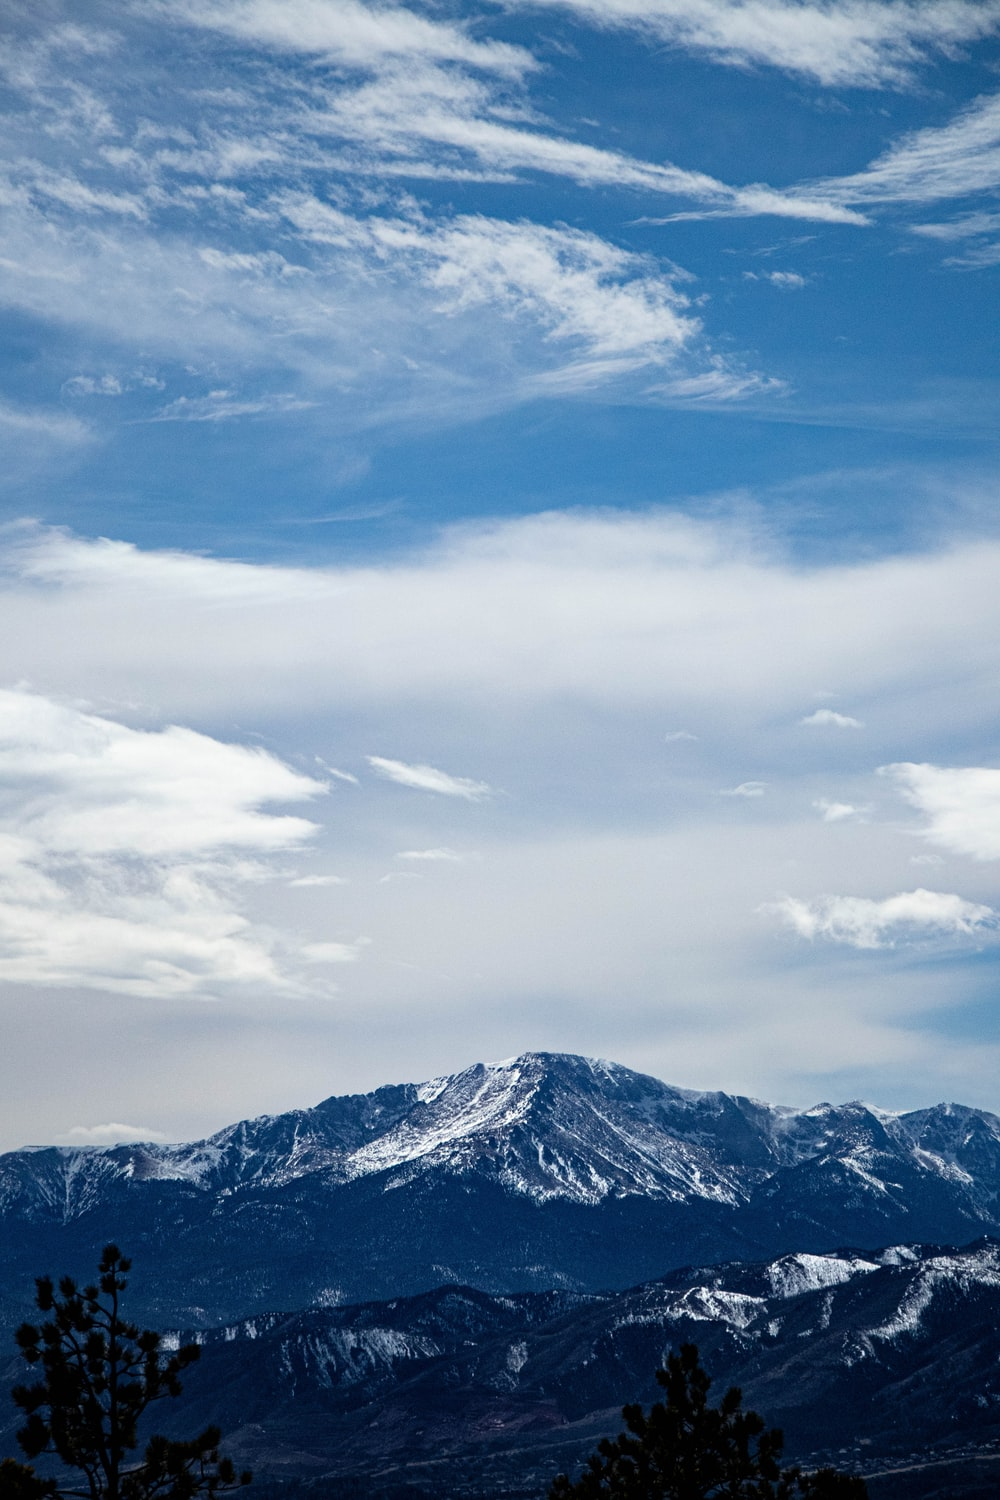 snow covered mountain under blue sky during daytime